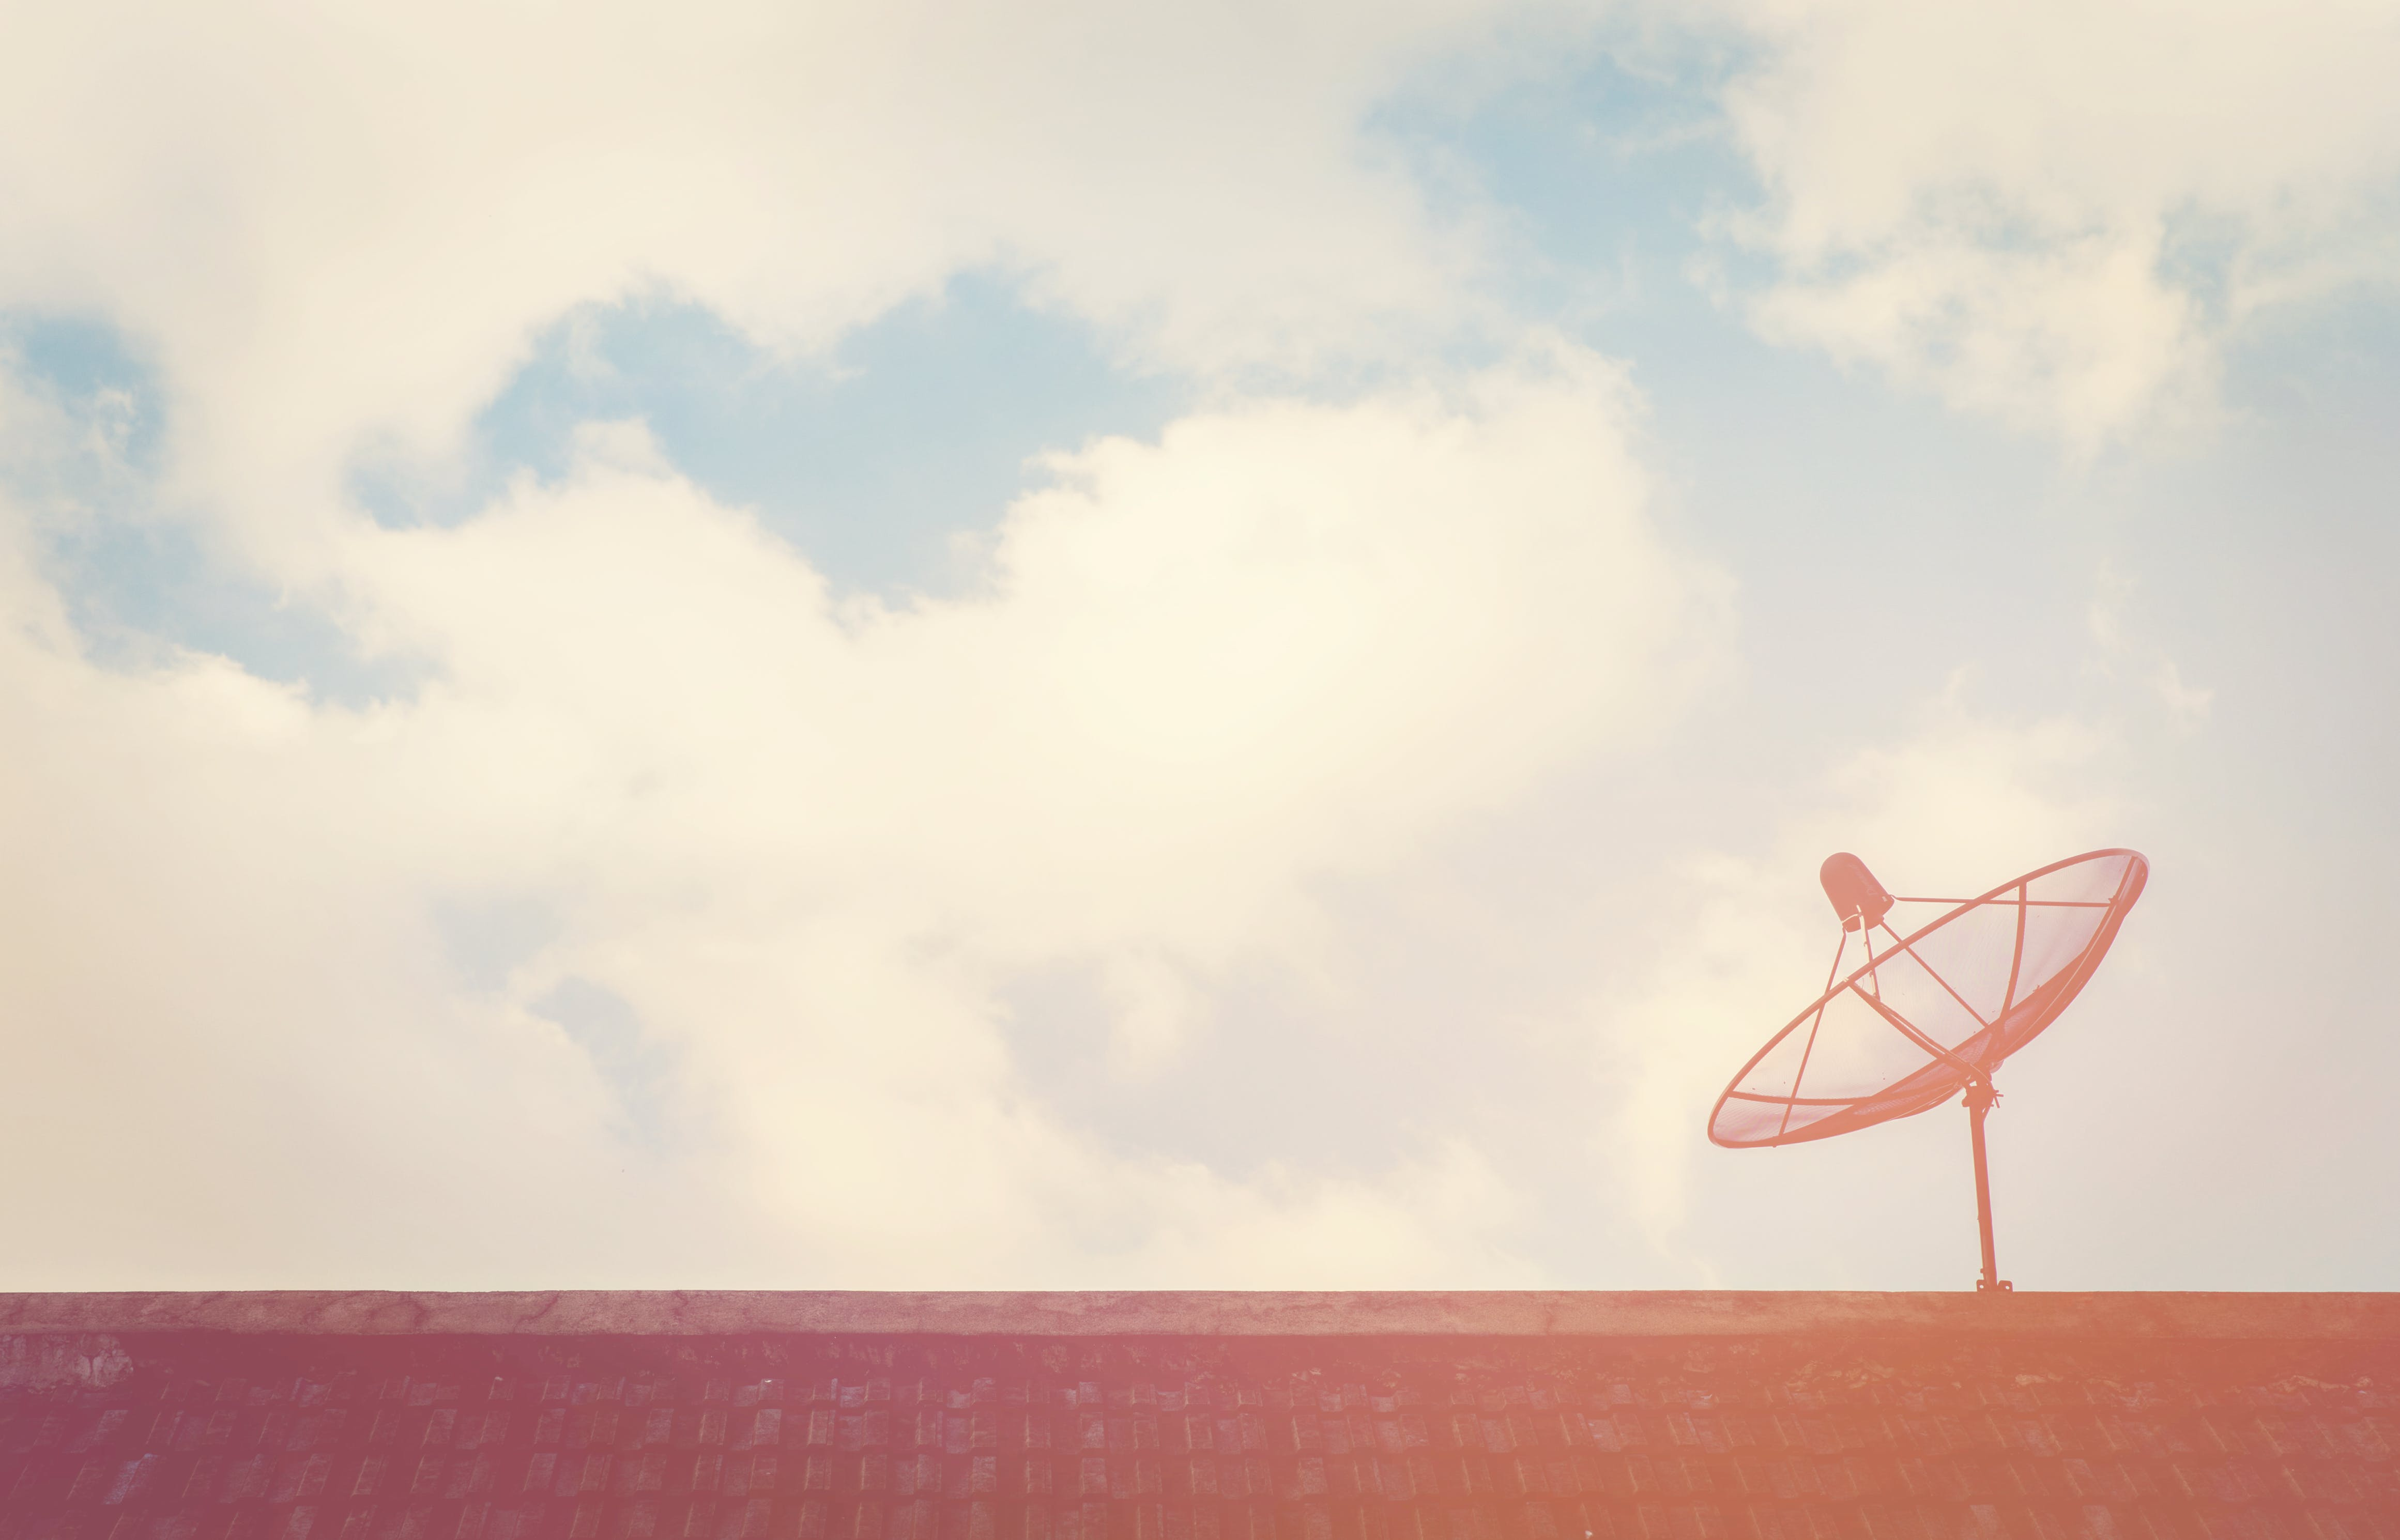 Free stock photo of sky, space, house, vintage